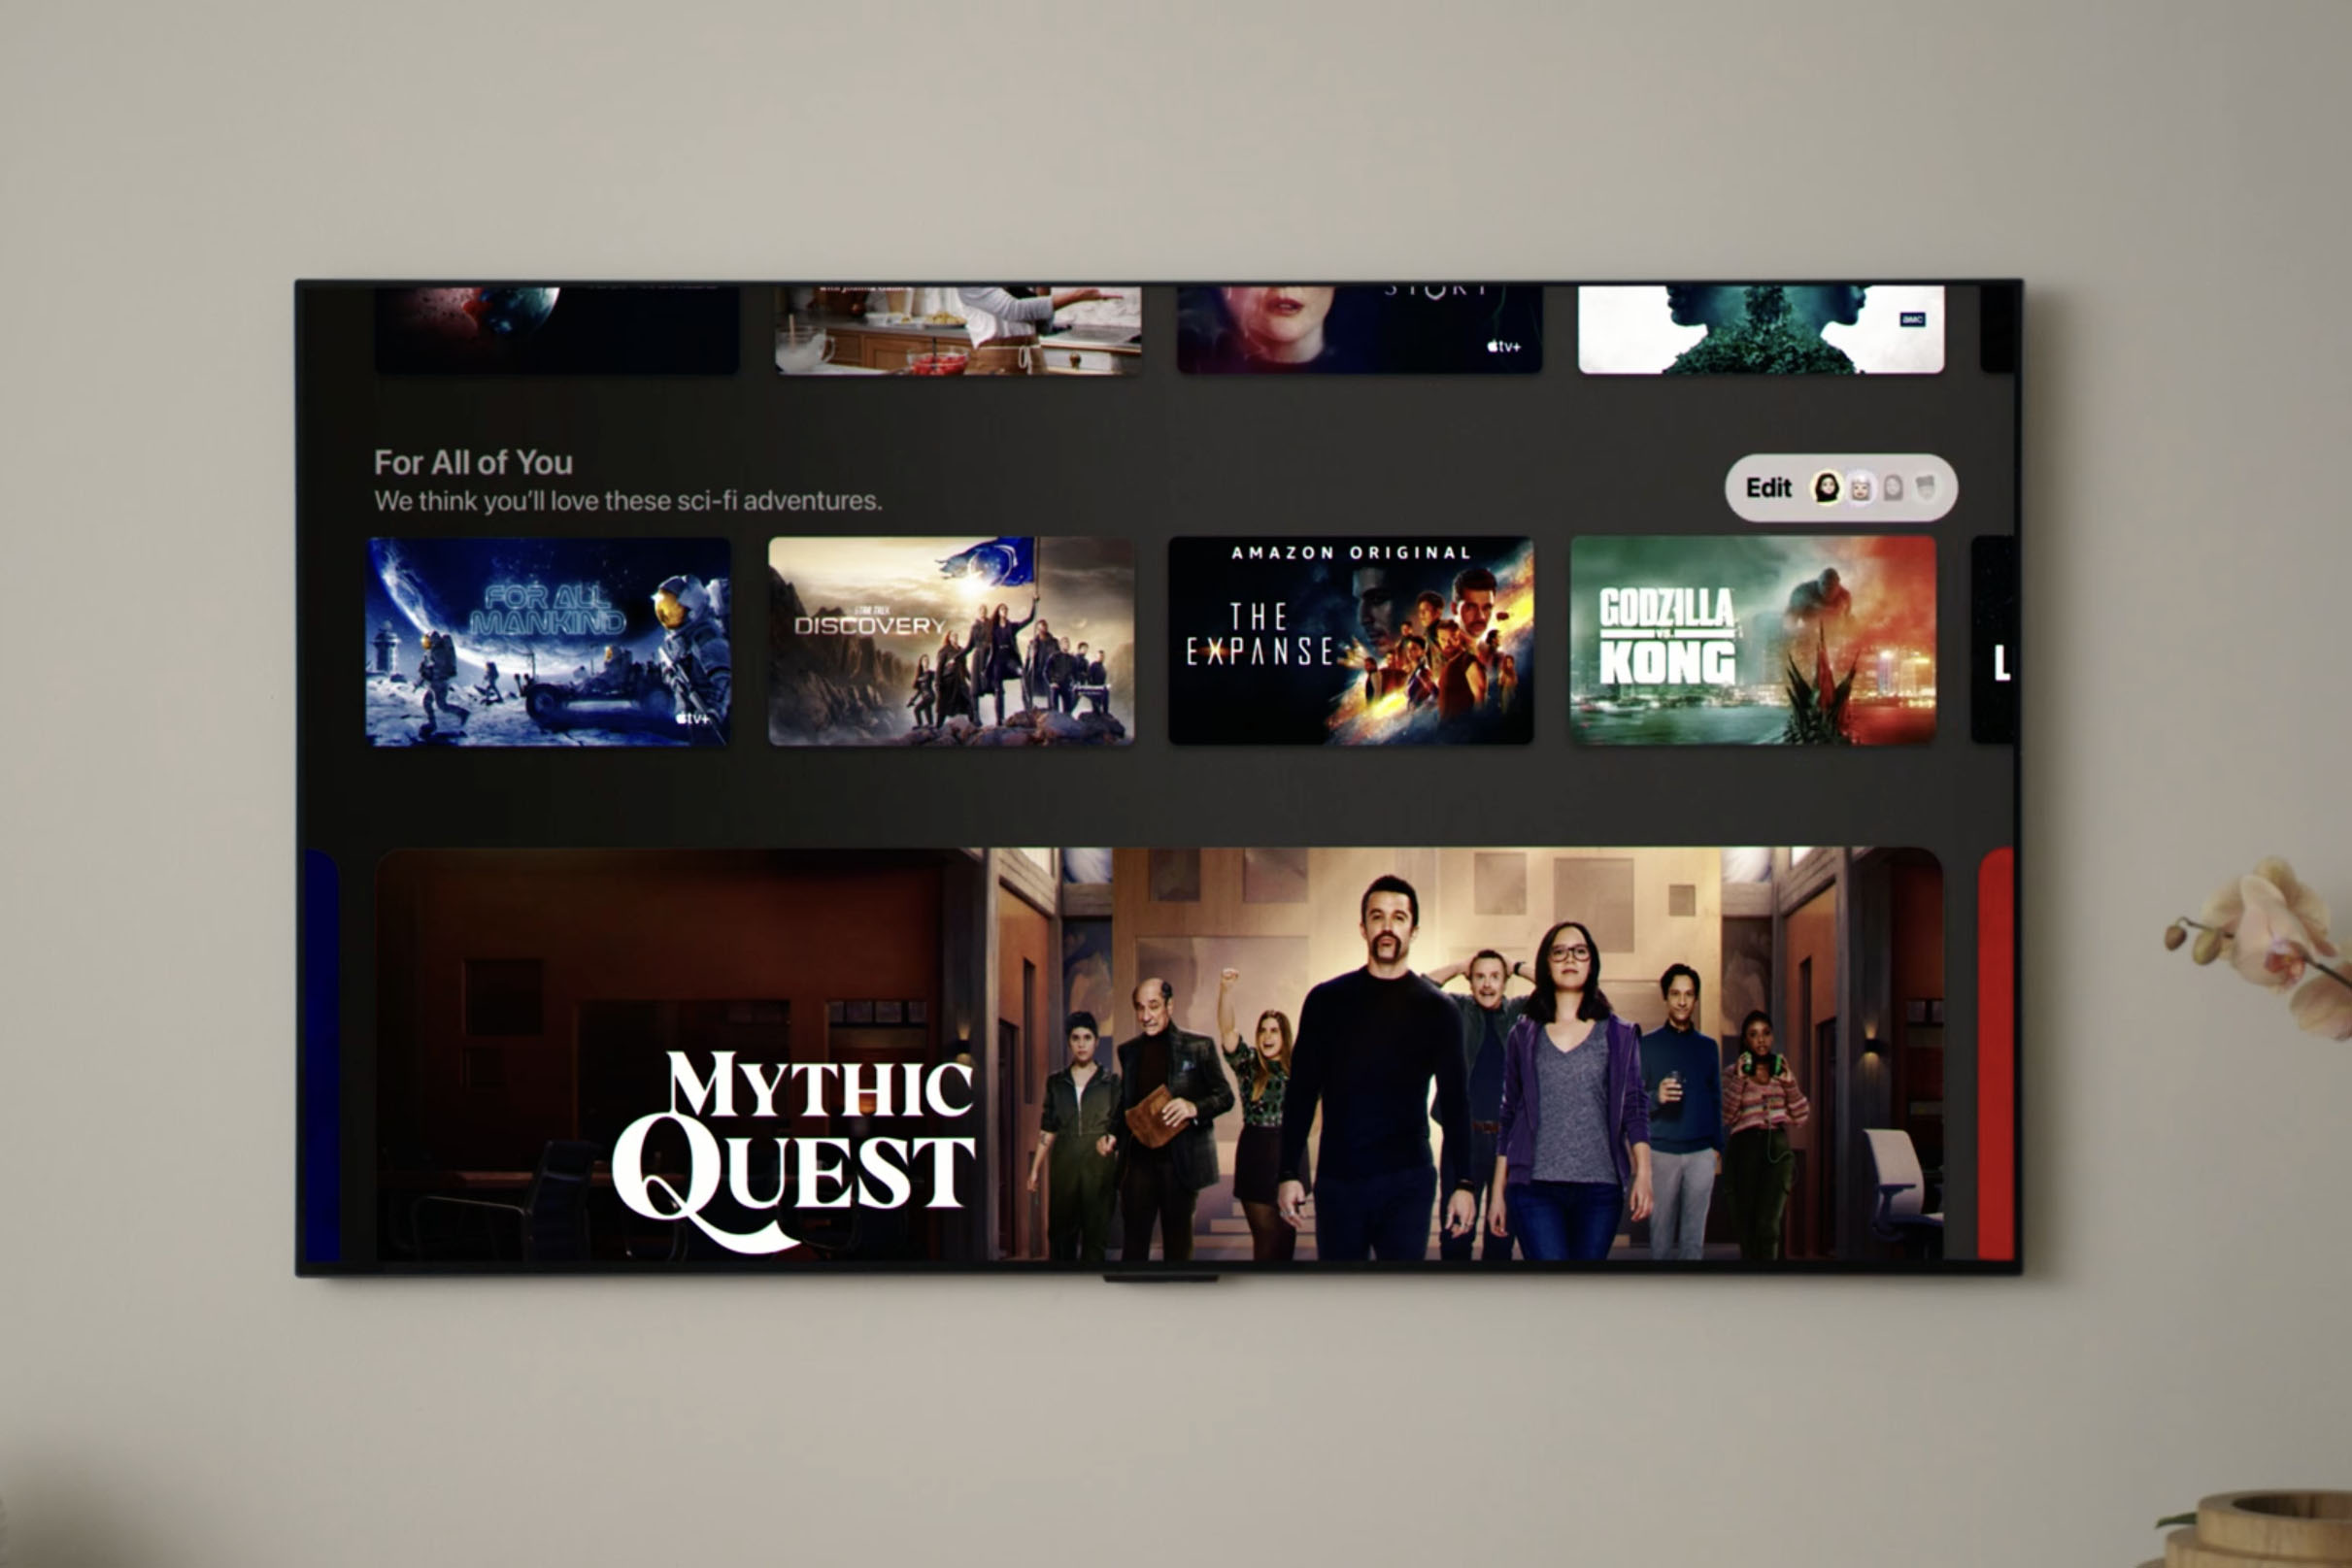 TVOS 15: Features: beta, launch compatibility